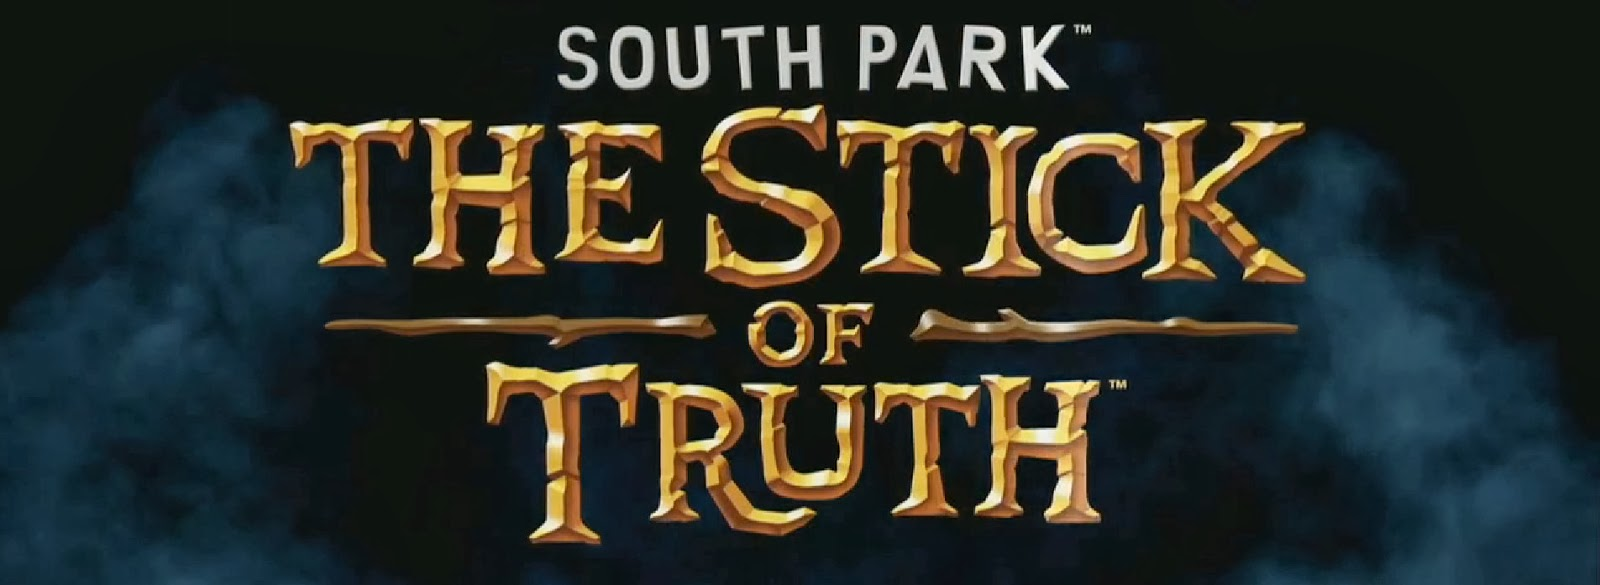 South Park The Stick of Truth Pc Game Full Version Free